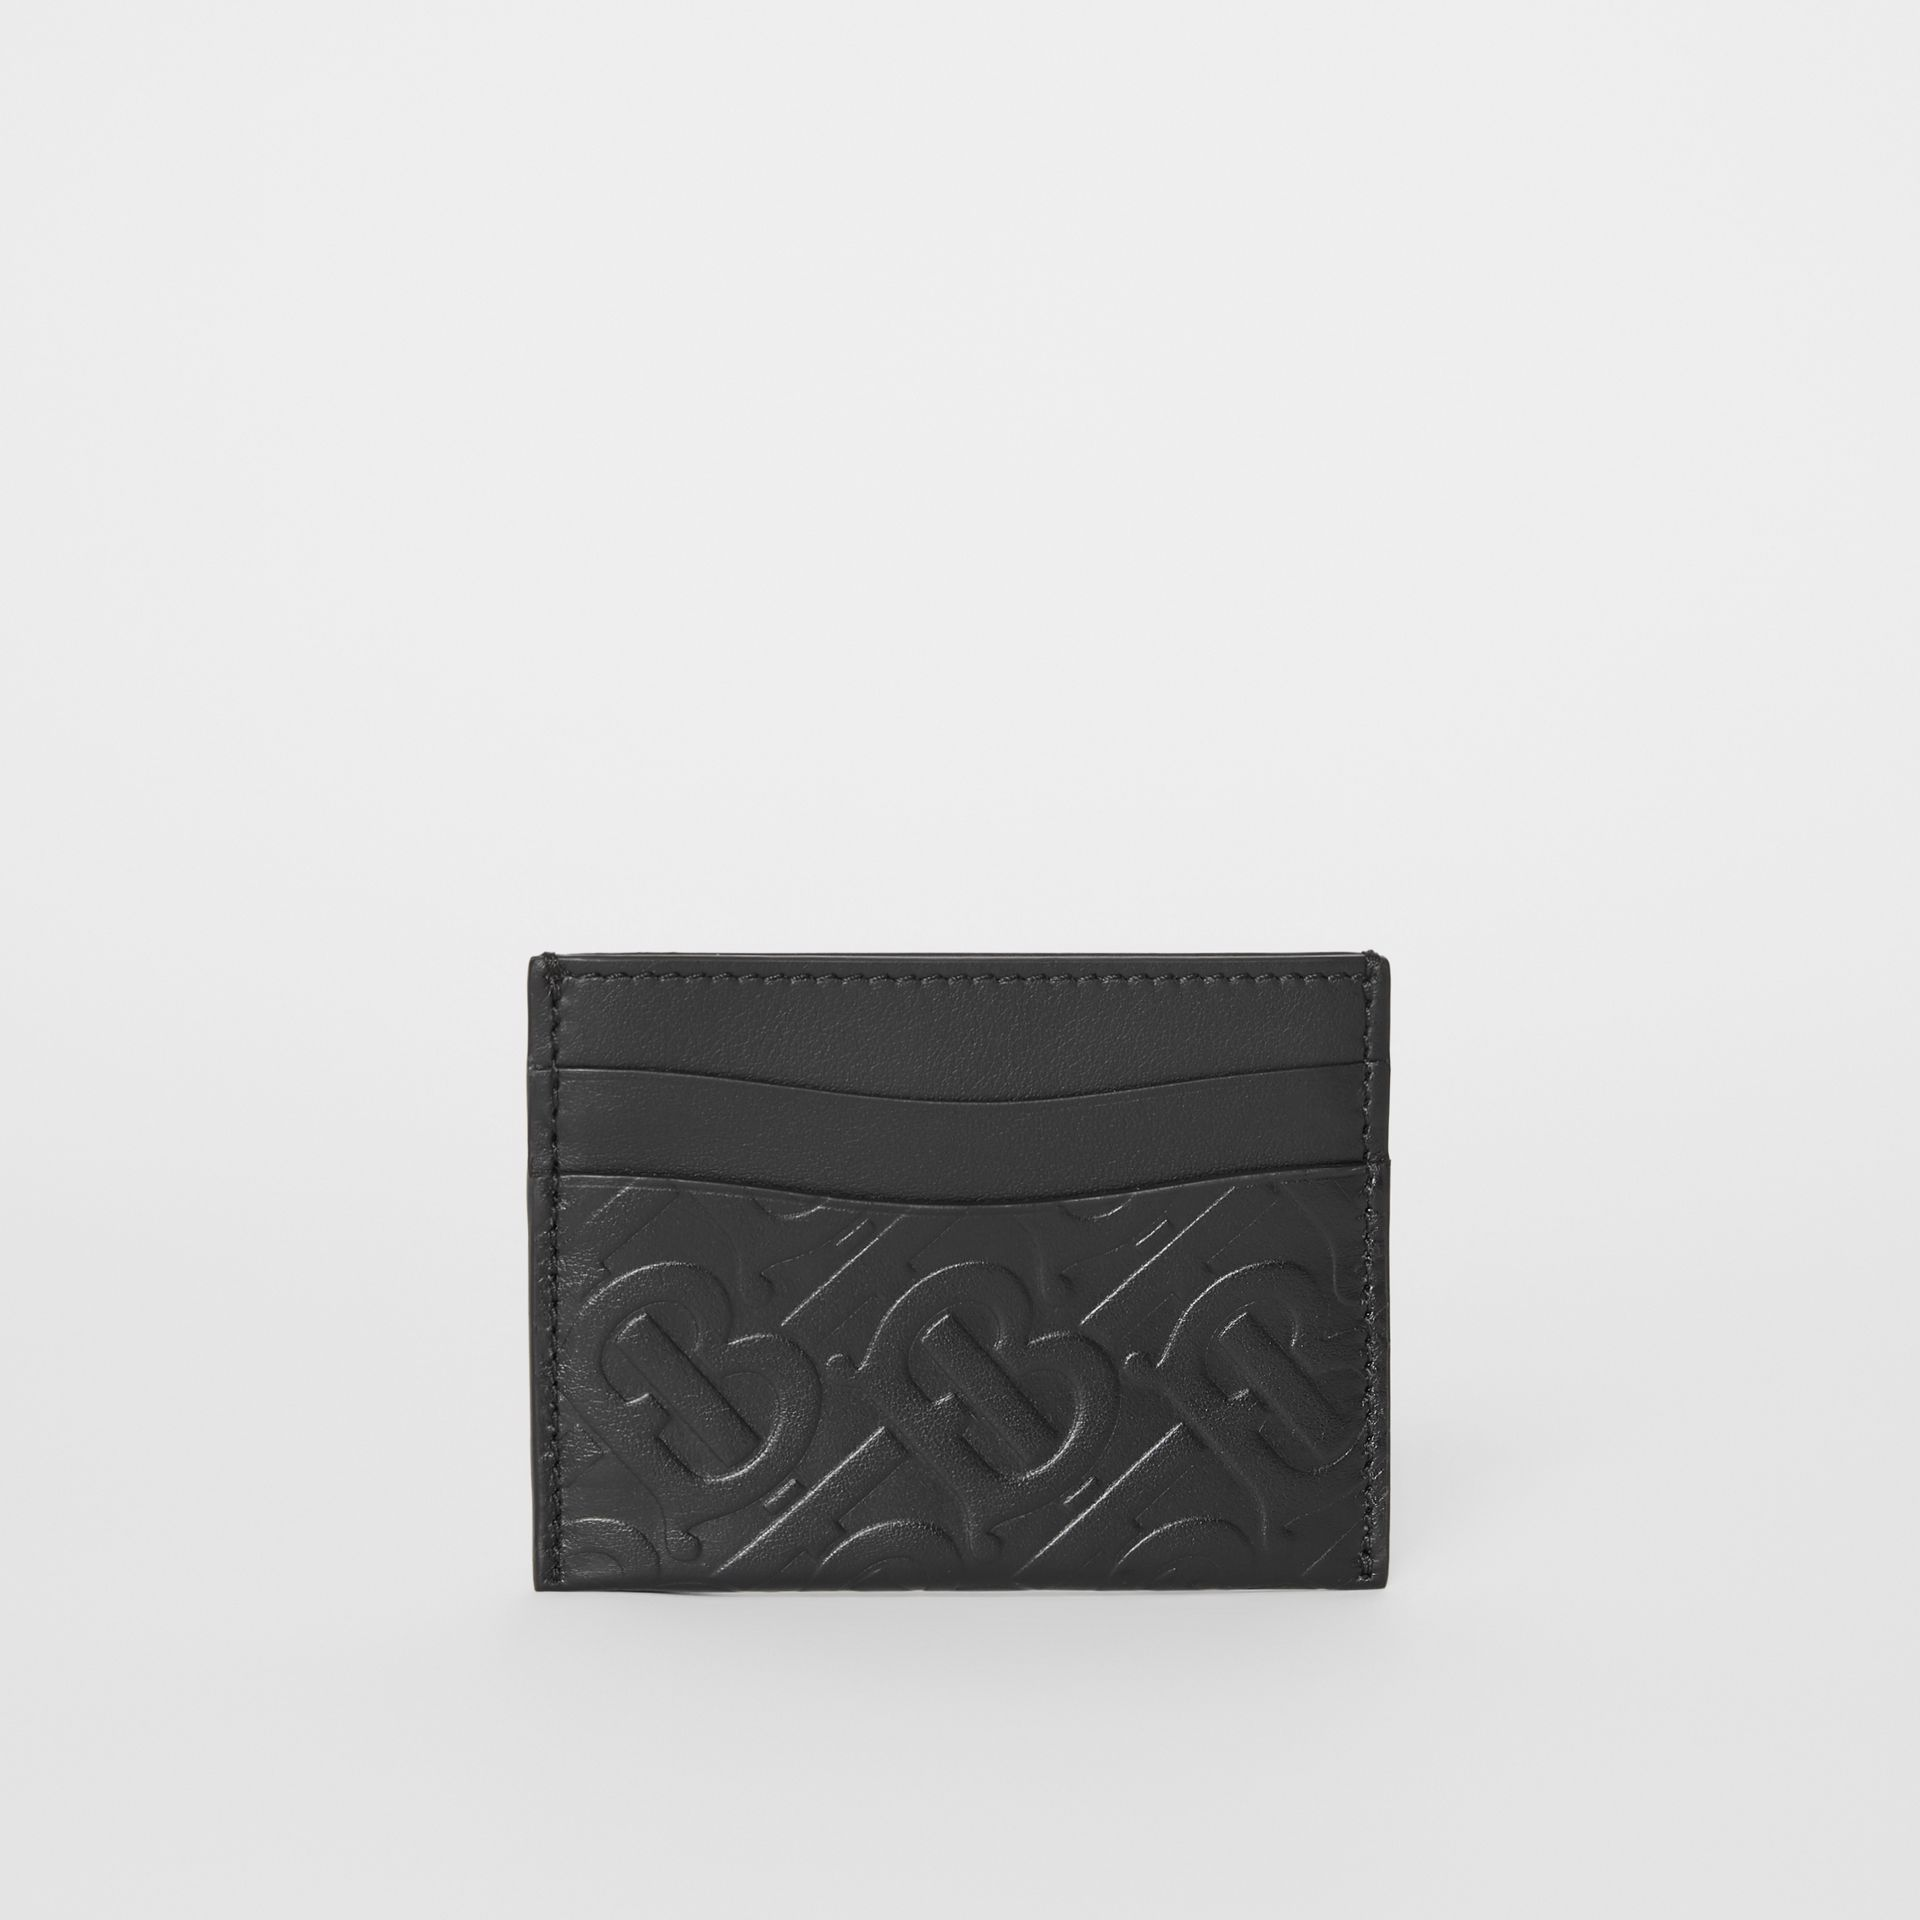 Monogram Leather Card Case in Black - Women | Burberry United Kingdom - gallery image 3